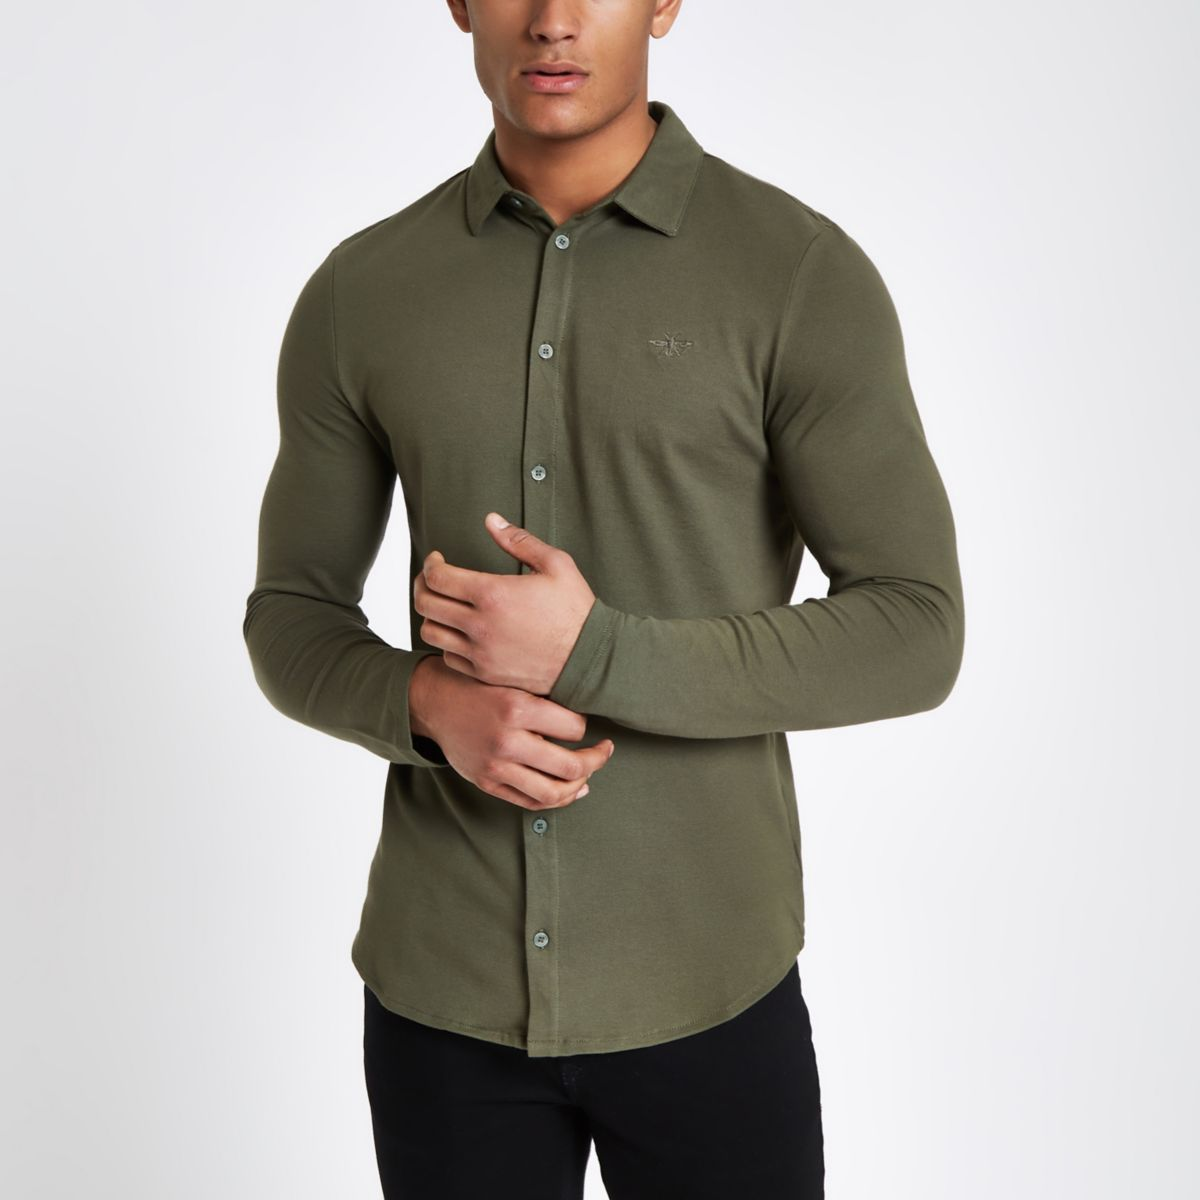 Khaki muscle fit button up shirt